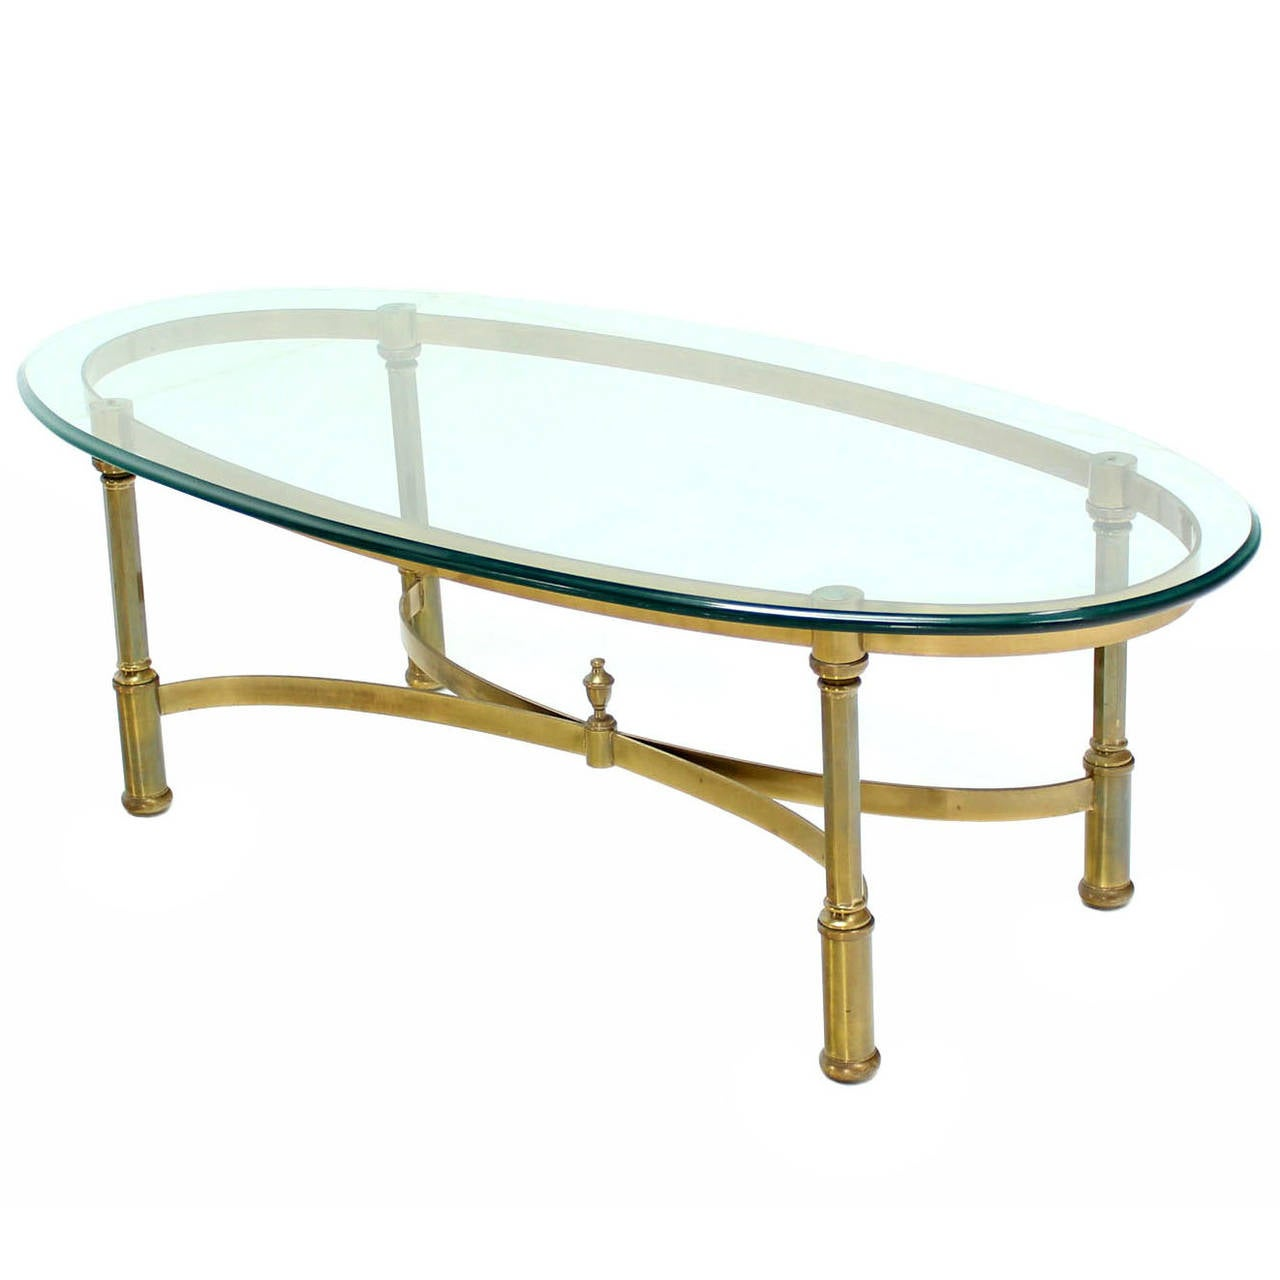 Oval Brass And Glass Coffee Table In Style Of Jansen At 1stdibs